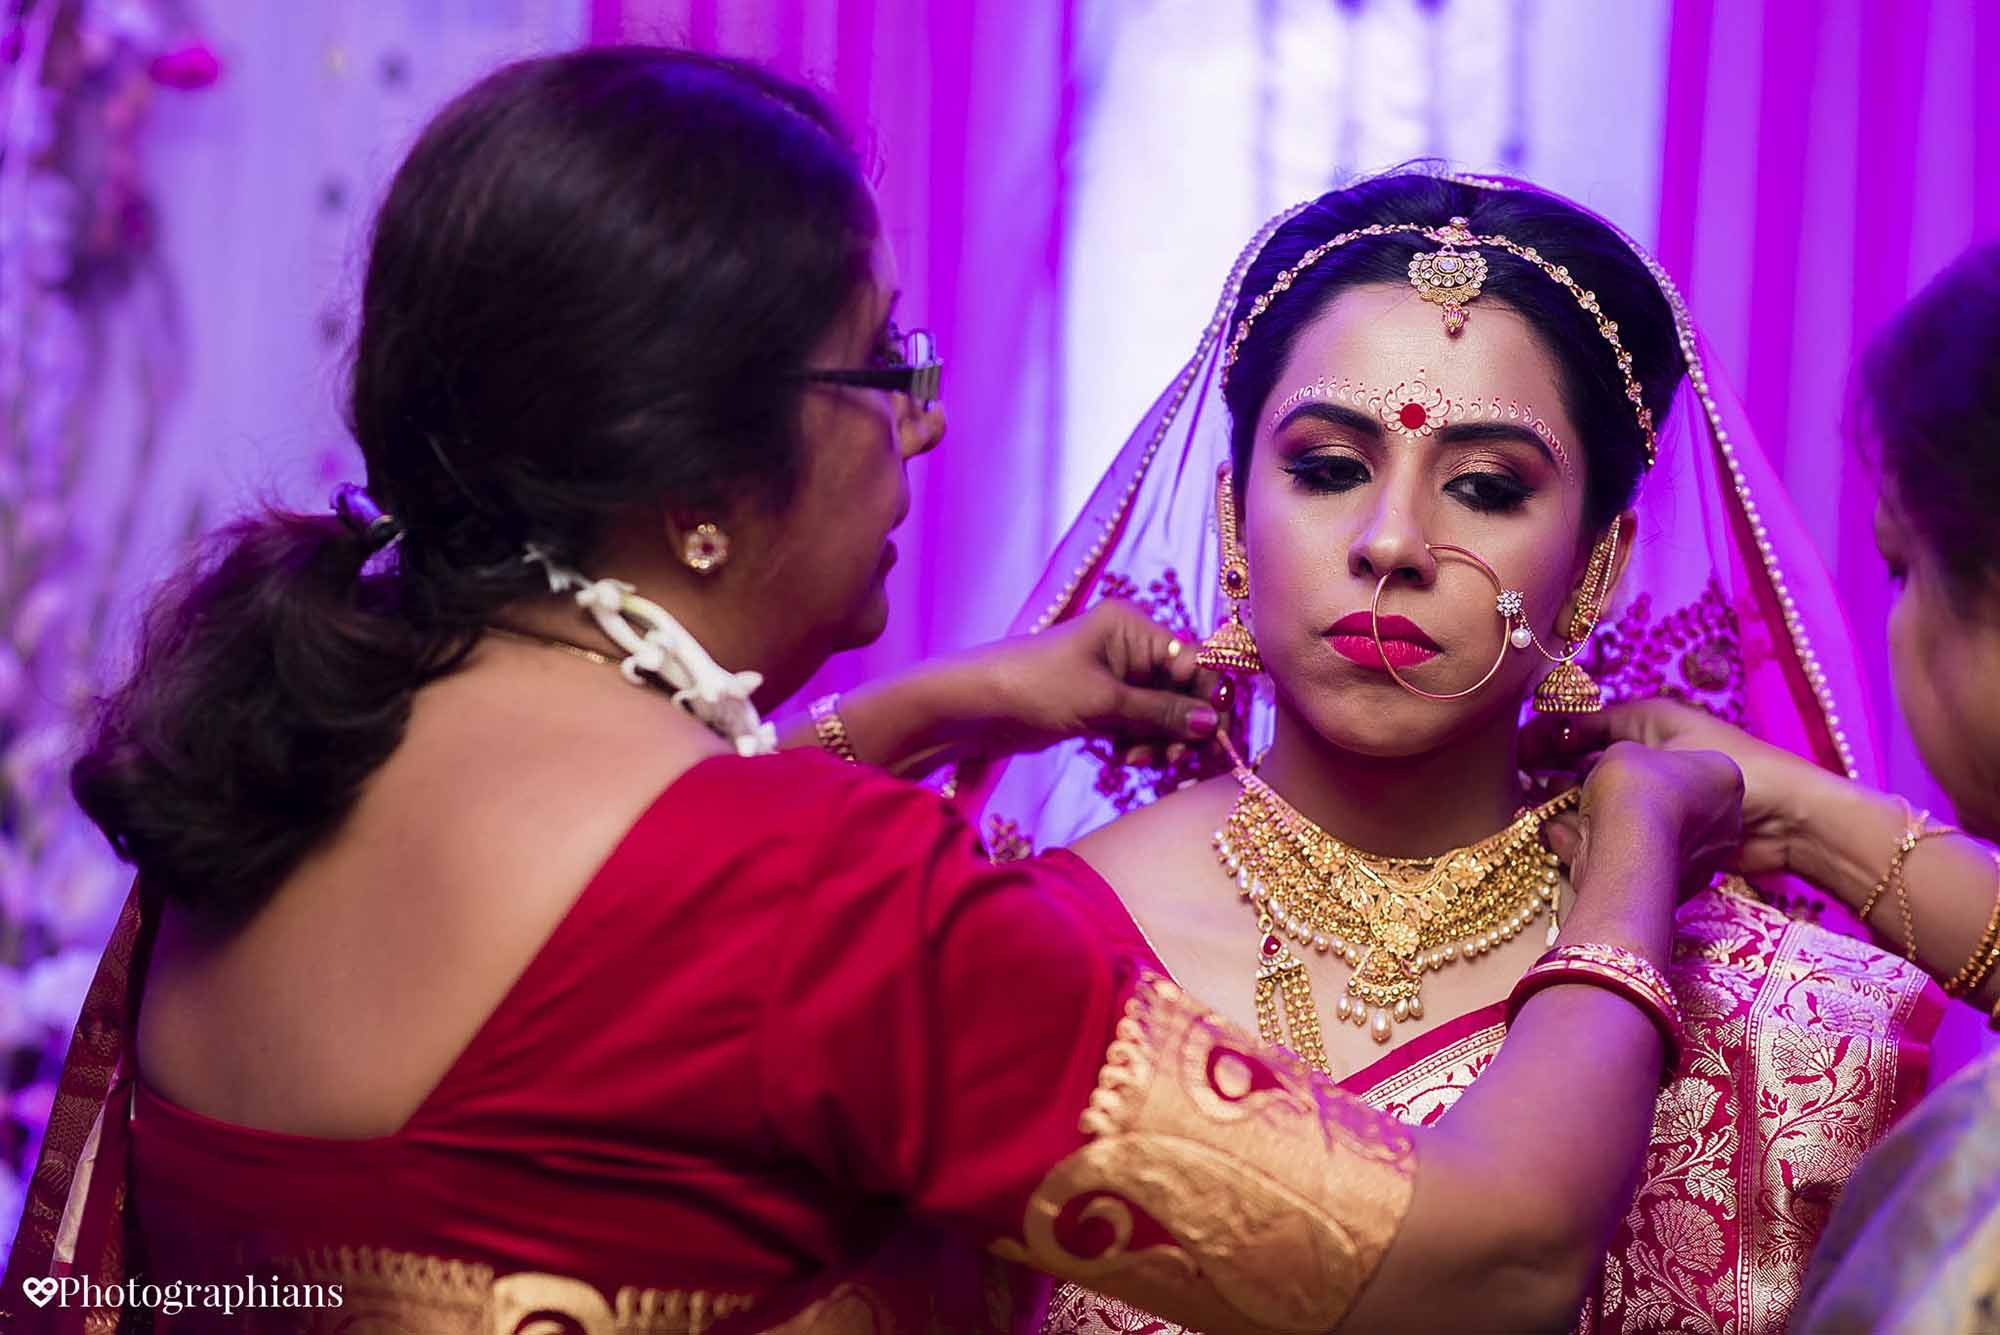 Bengali_Wedding_Photography_Kolkata_Photographians_171